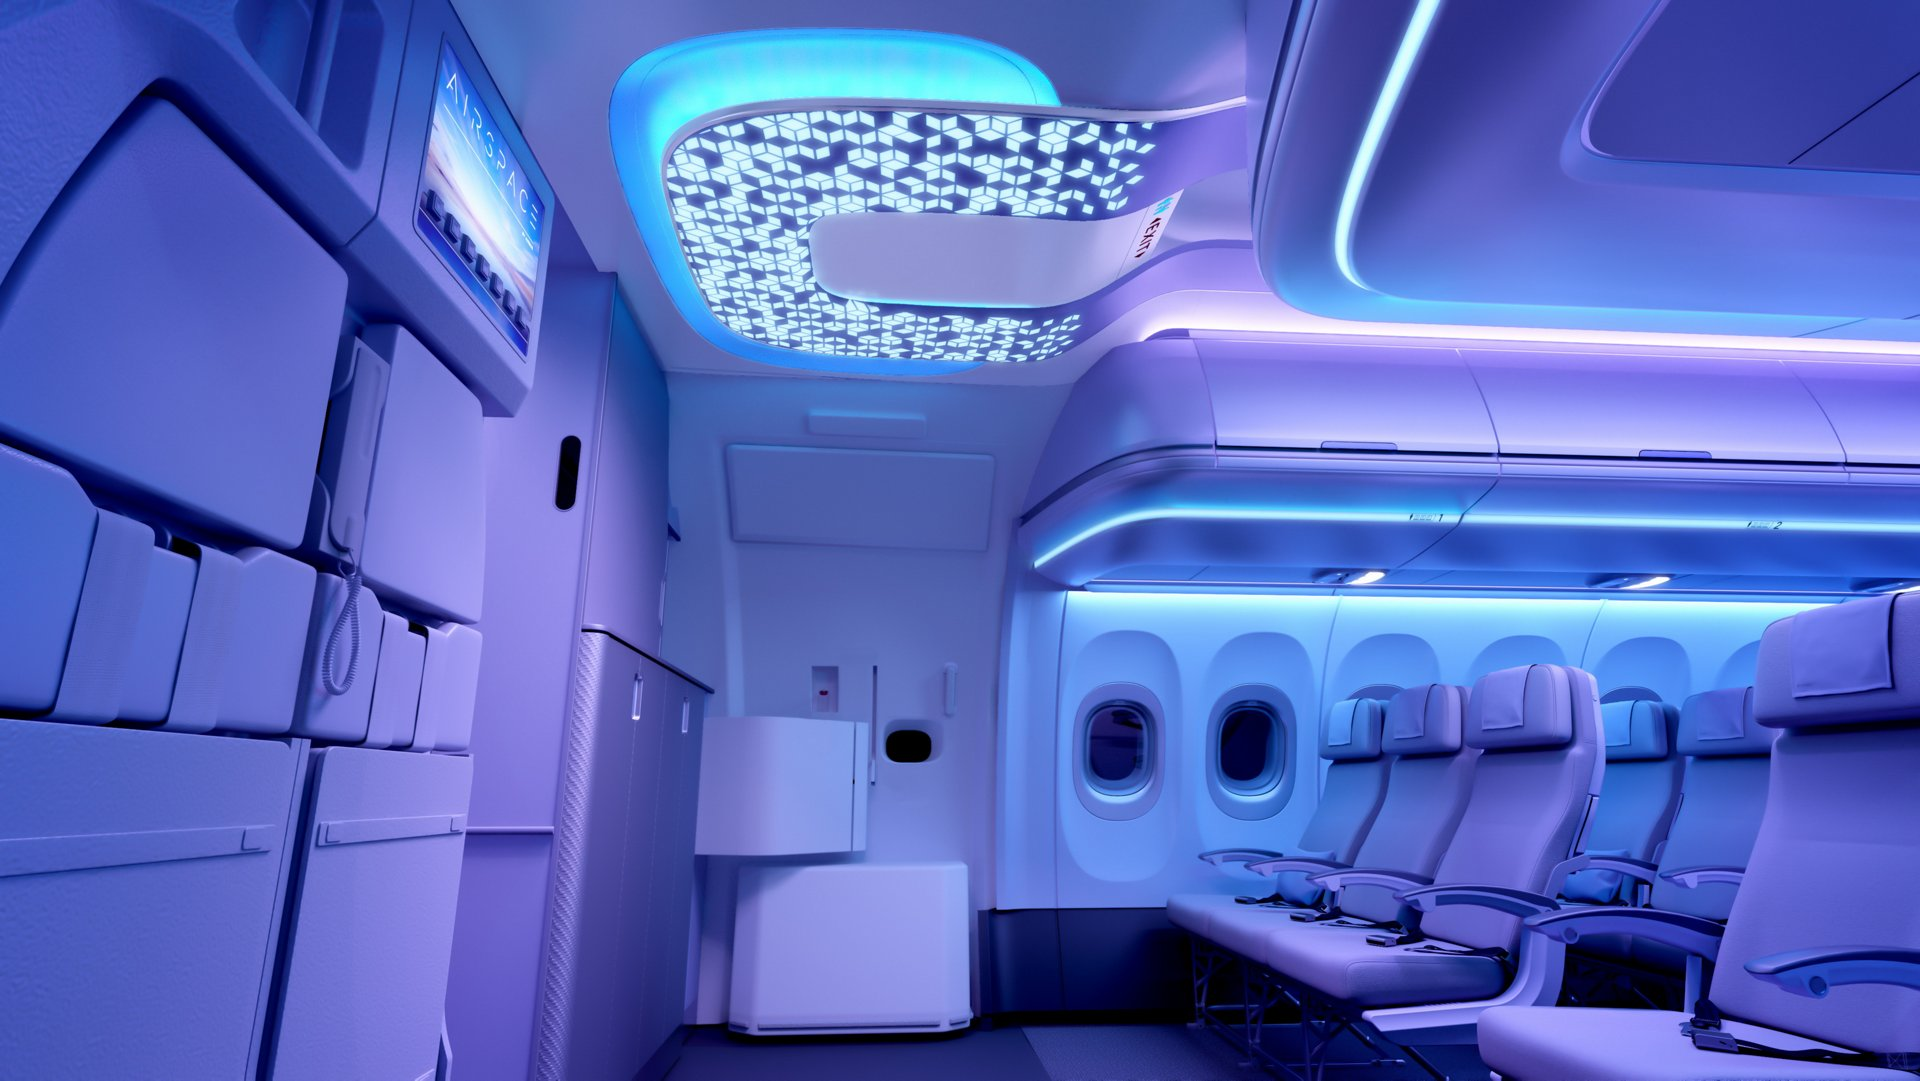 Airbus wins Crystal Cabin Award at APEX with Connected Cabin